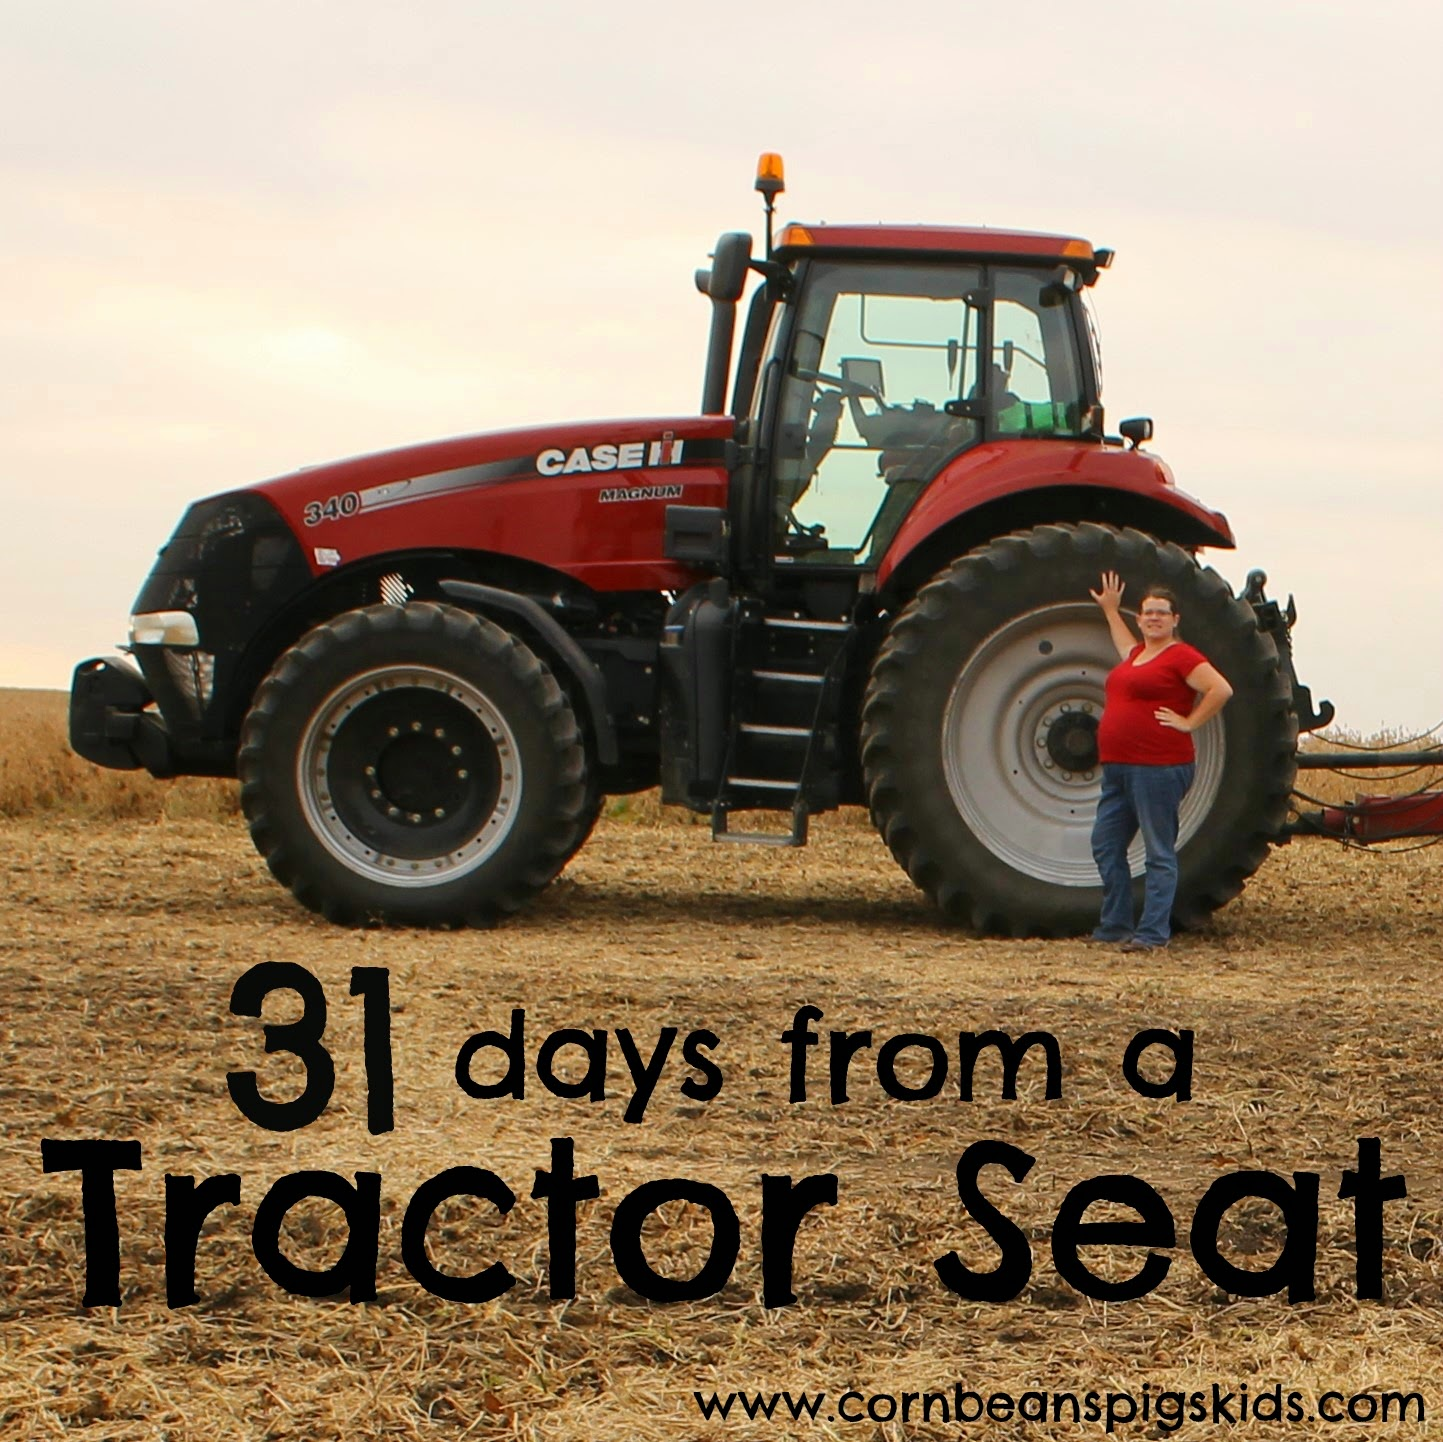 31 Days from a Tractor Seat - A Little Dirt Never Hurt